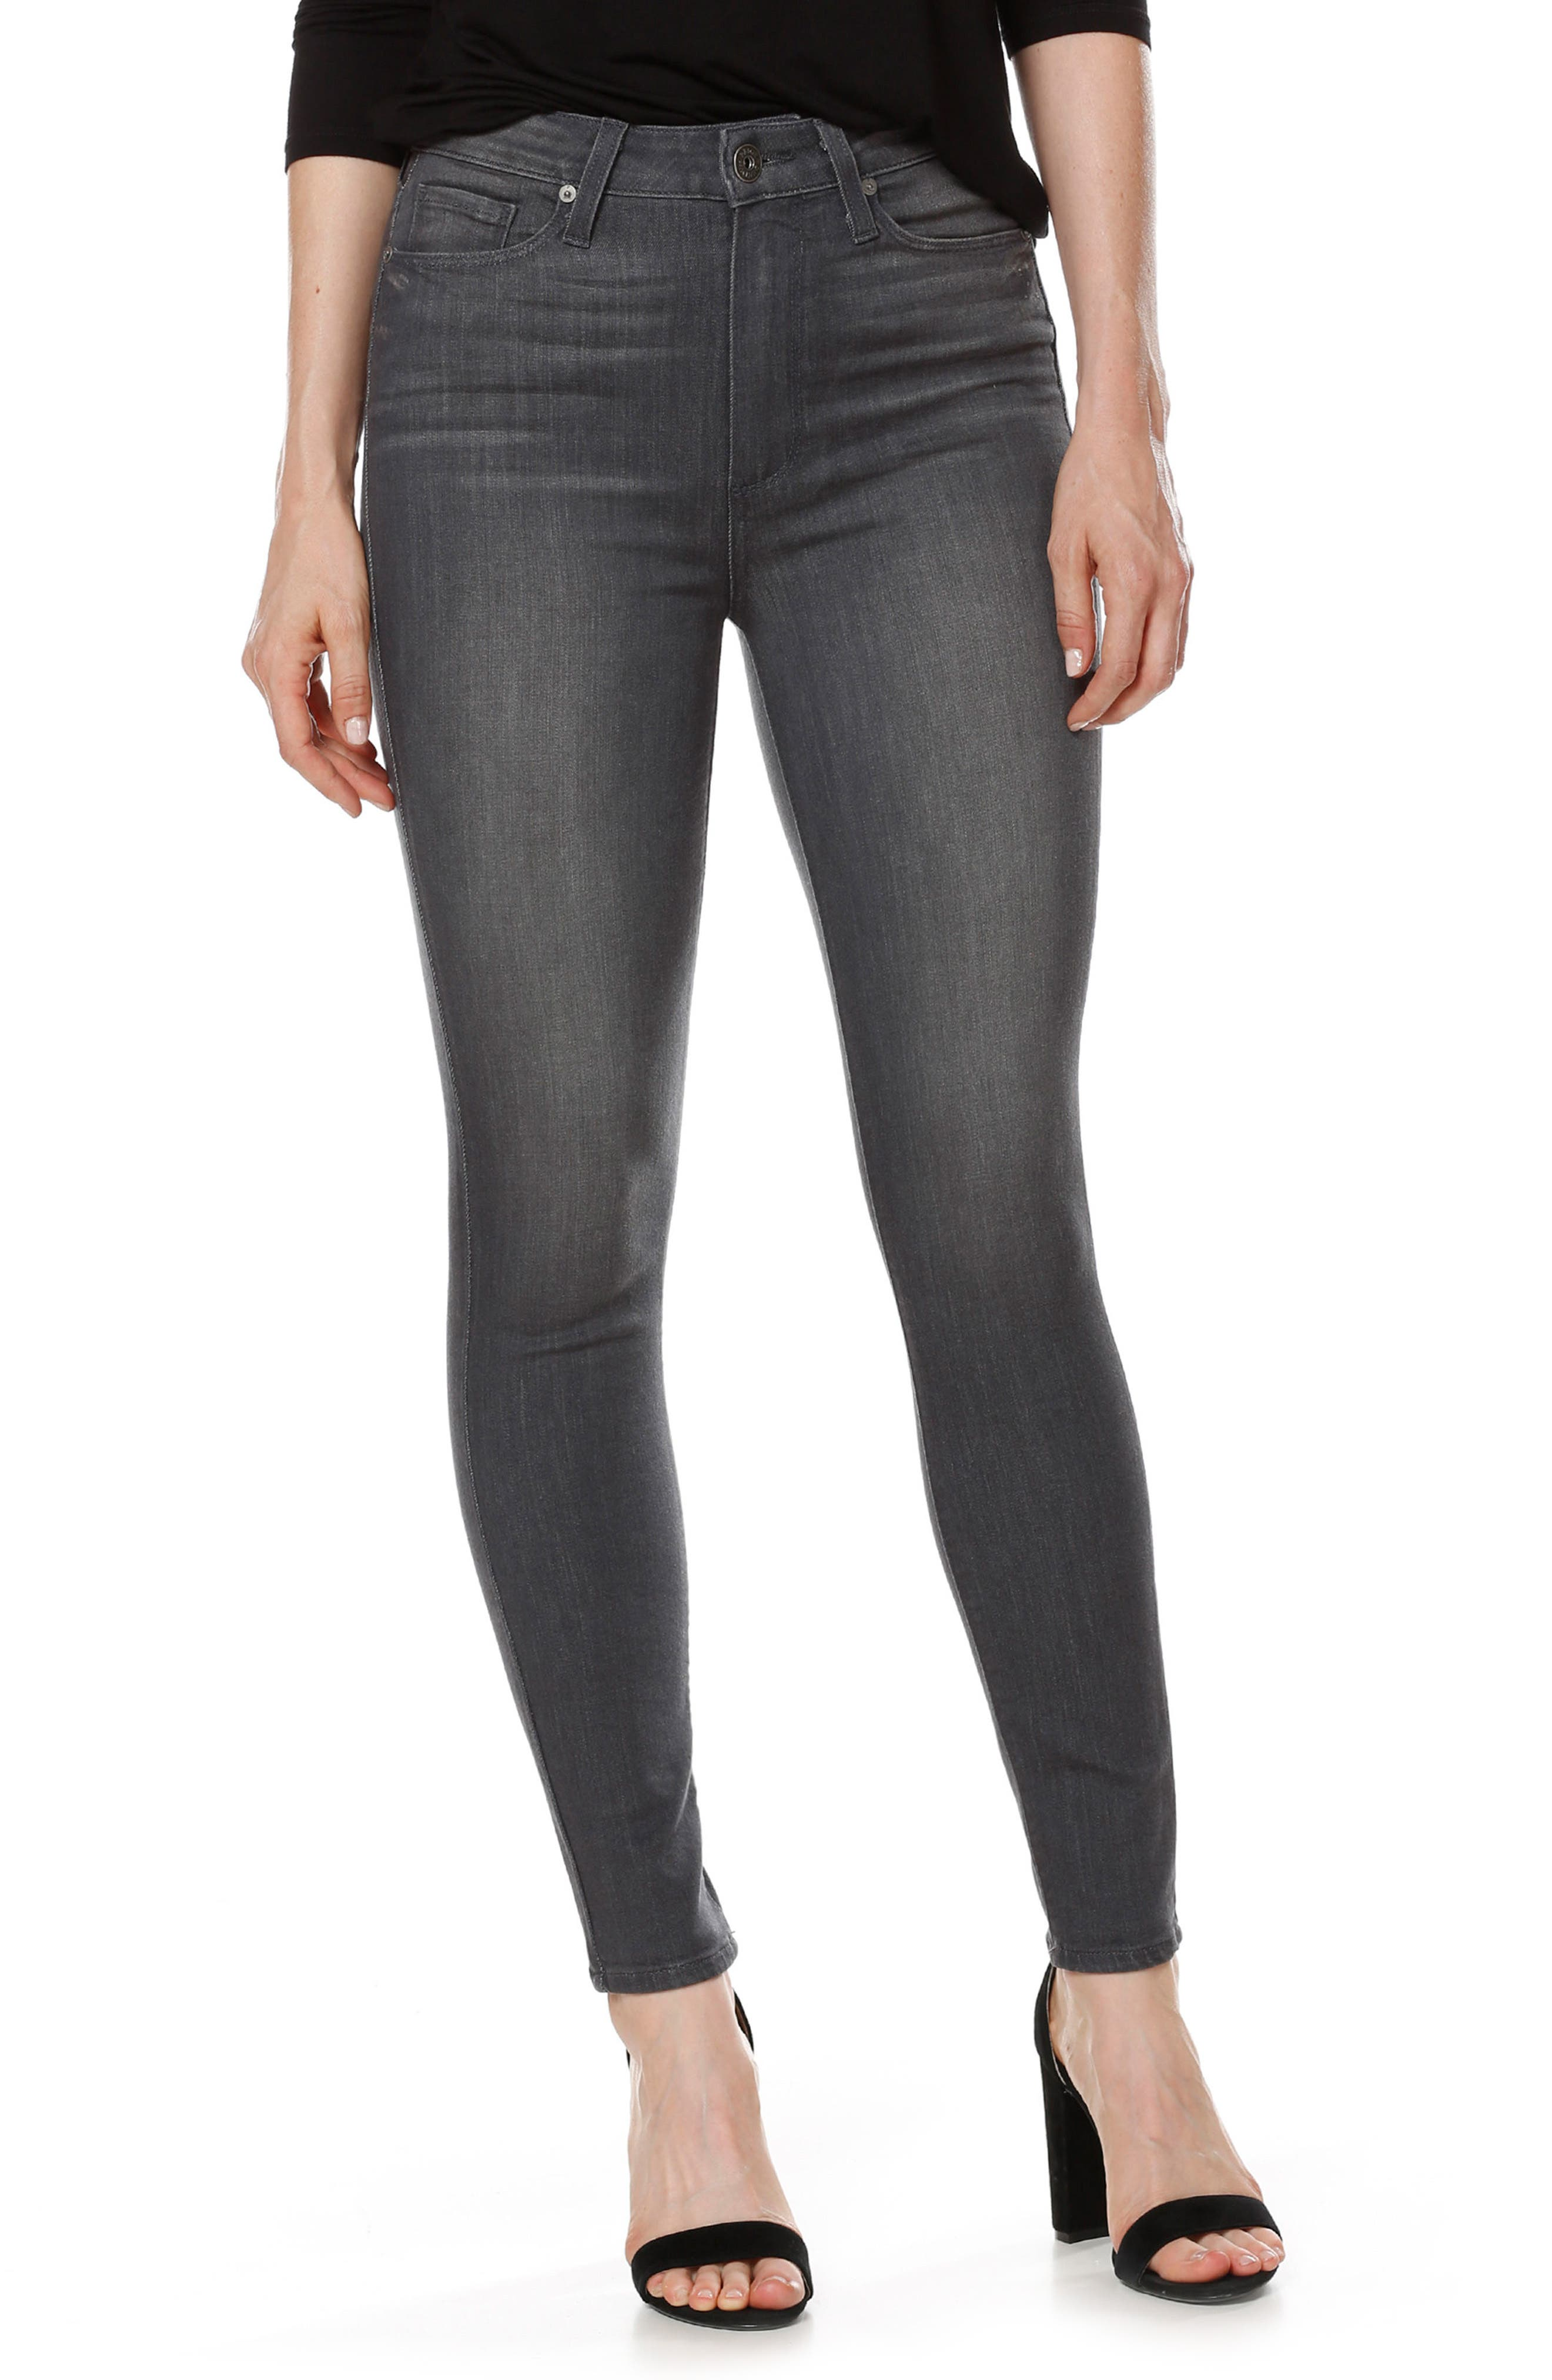 Main Image - PAIGE Transcend - Margot High Waist Ankle Ultra Skinny Jeans (Summit Grey)